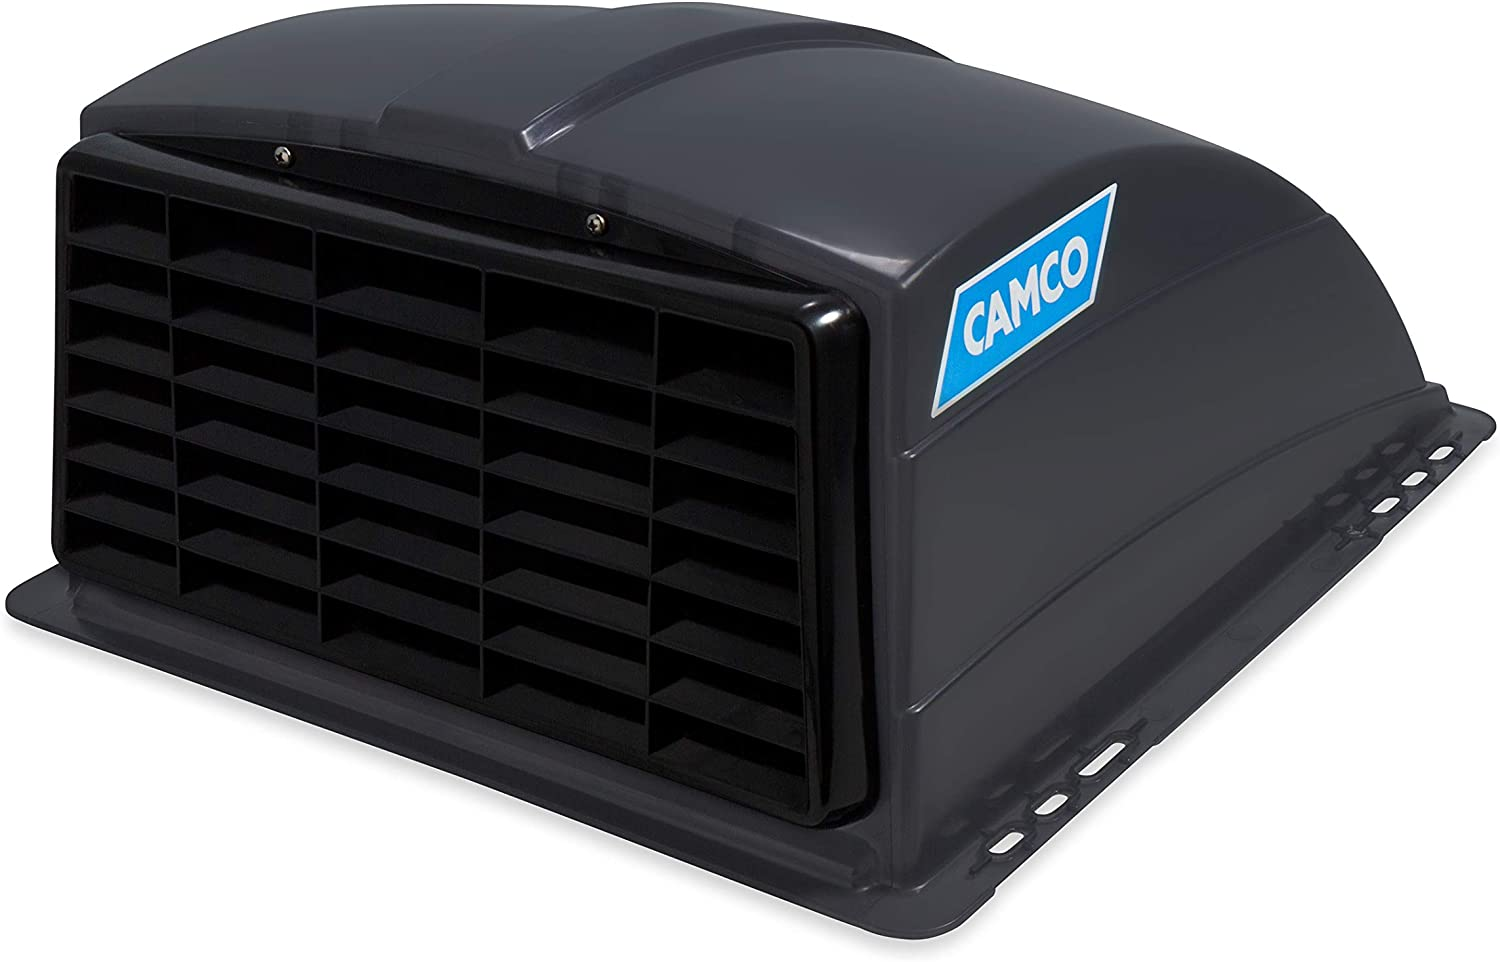 Finally resale Low price start Camco Standard Roof Vent Cover Cleaning Easy for Opens Aerodyn